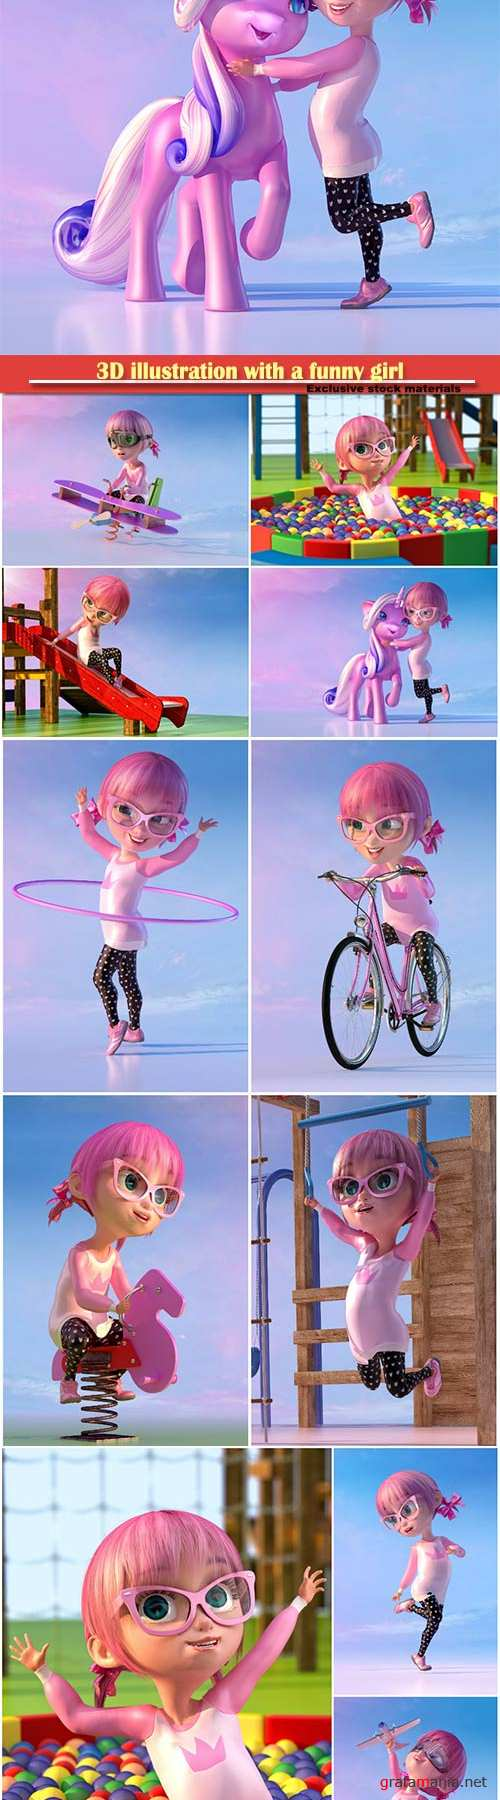 3D illustration with a funny girl